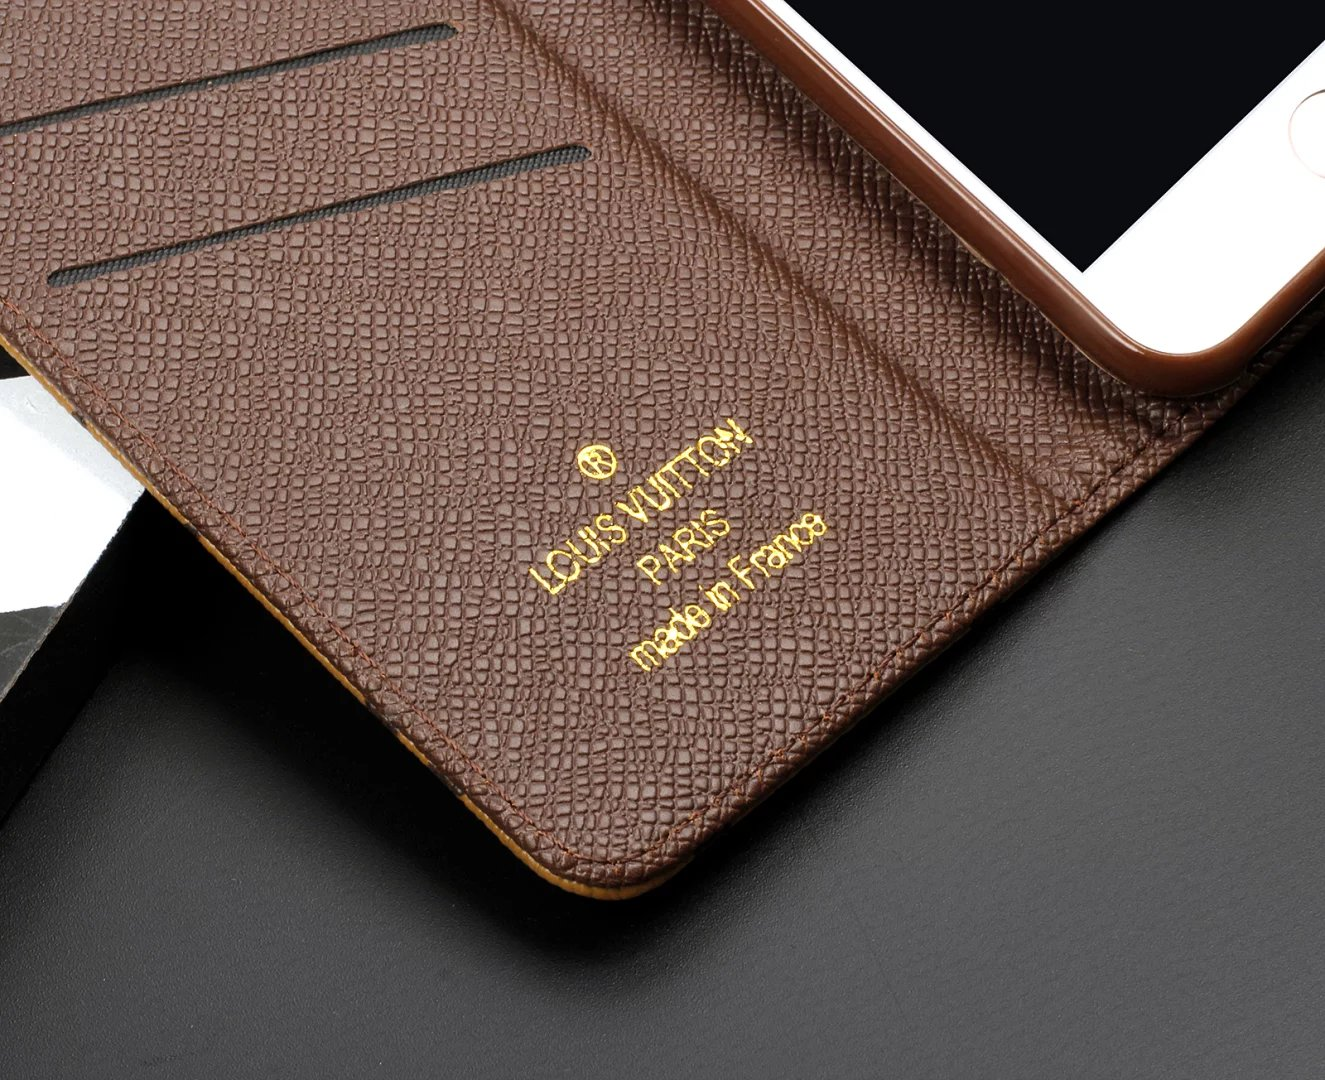 create an iphone 8 Plus case iphone 8 Plus s phone covers Louis Vuitton iphone 8 Plus case mophie wiki iPhone 8 Plus case protector case cover for iphone 8 Plus how much are mophie cases iPhone 8 Plus cases for sale design own iPhone 8 Plus case